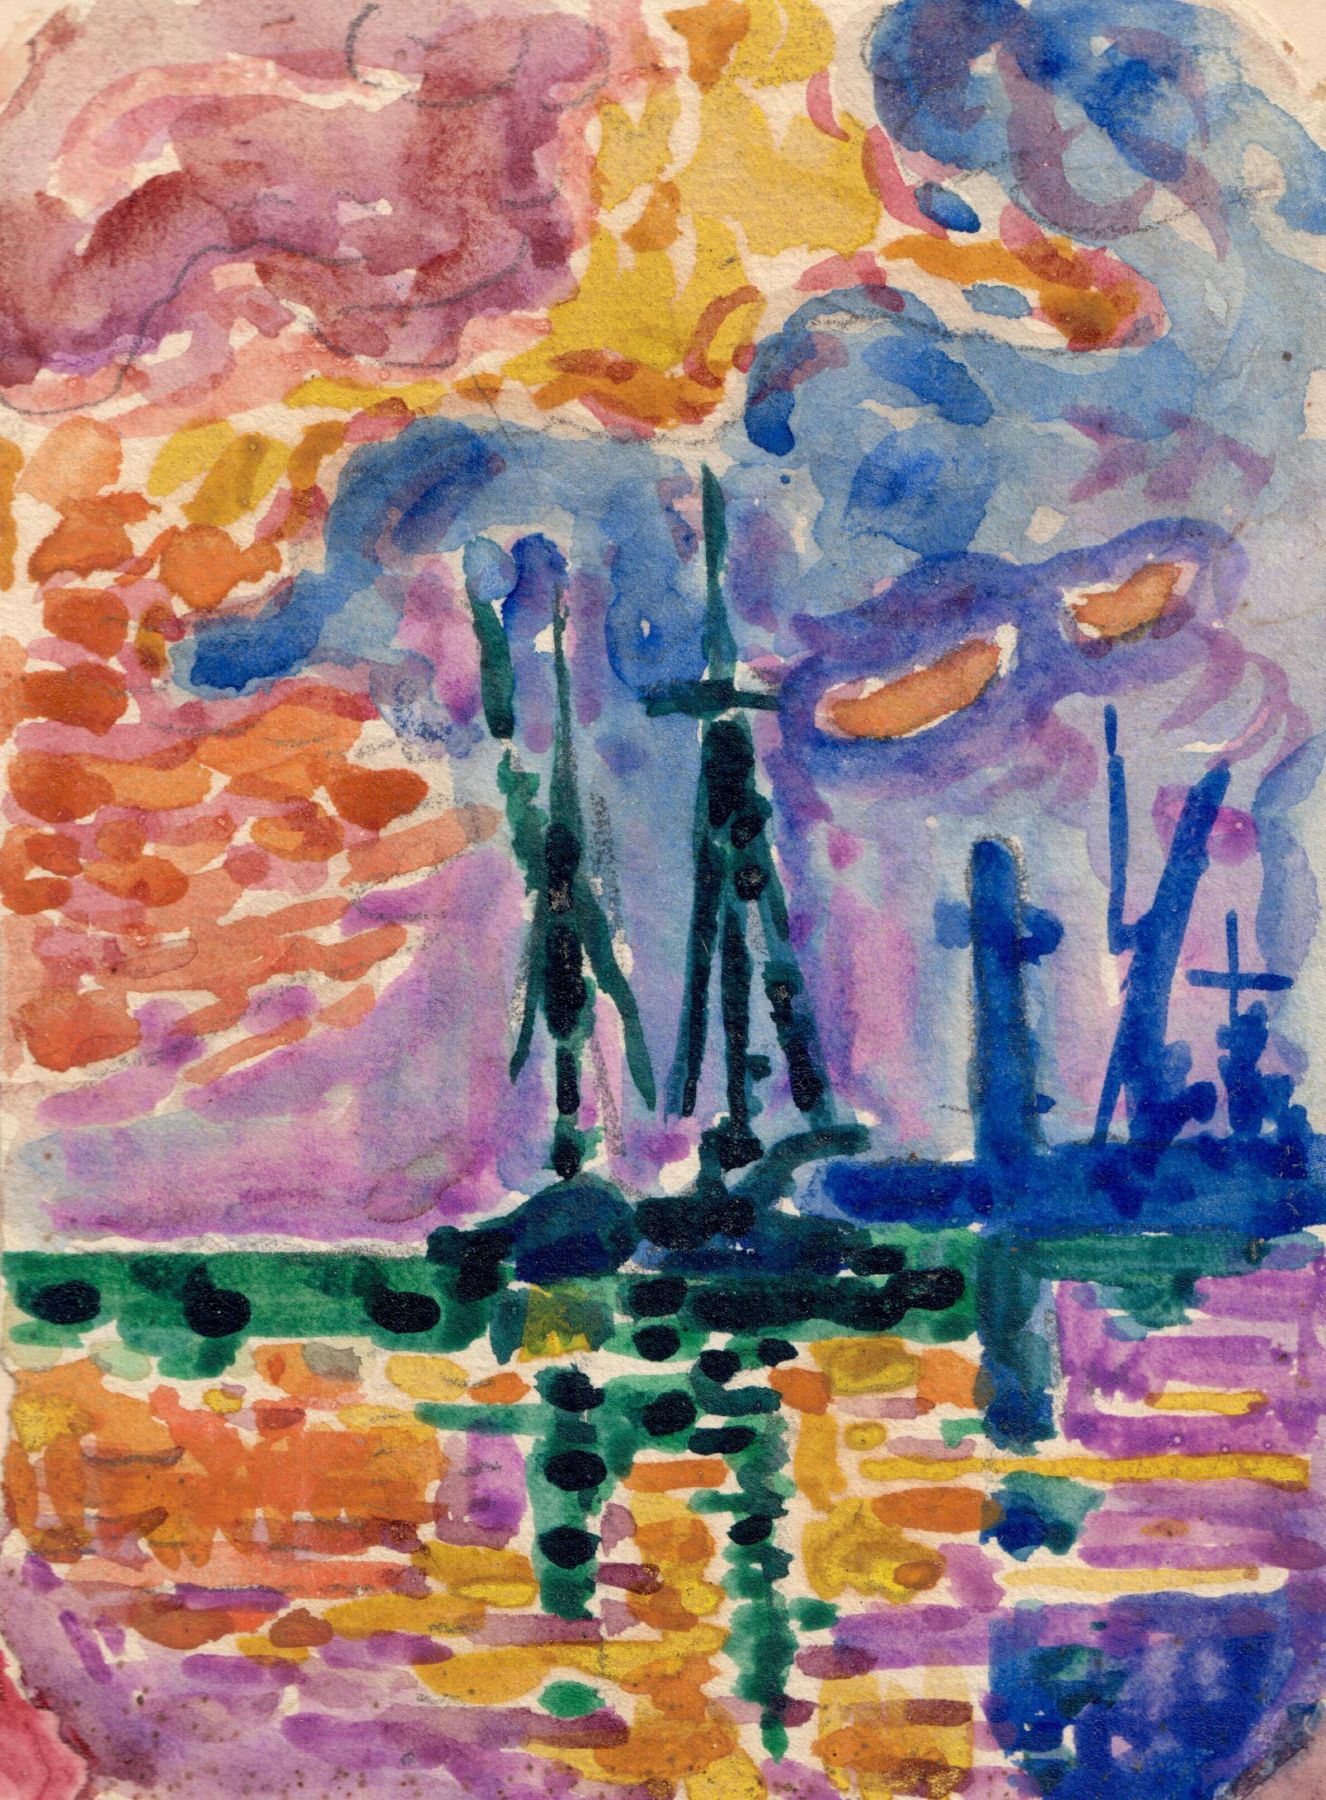 Paul Signac Saint-Tropez, la jetée, 1905 Gouache and pencil on paper 5 5/8 x 4 inches